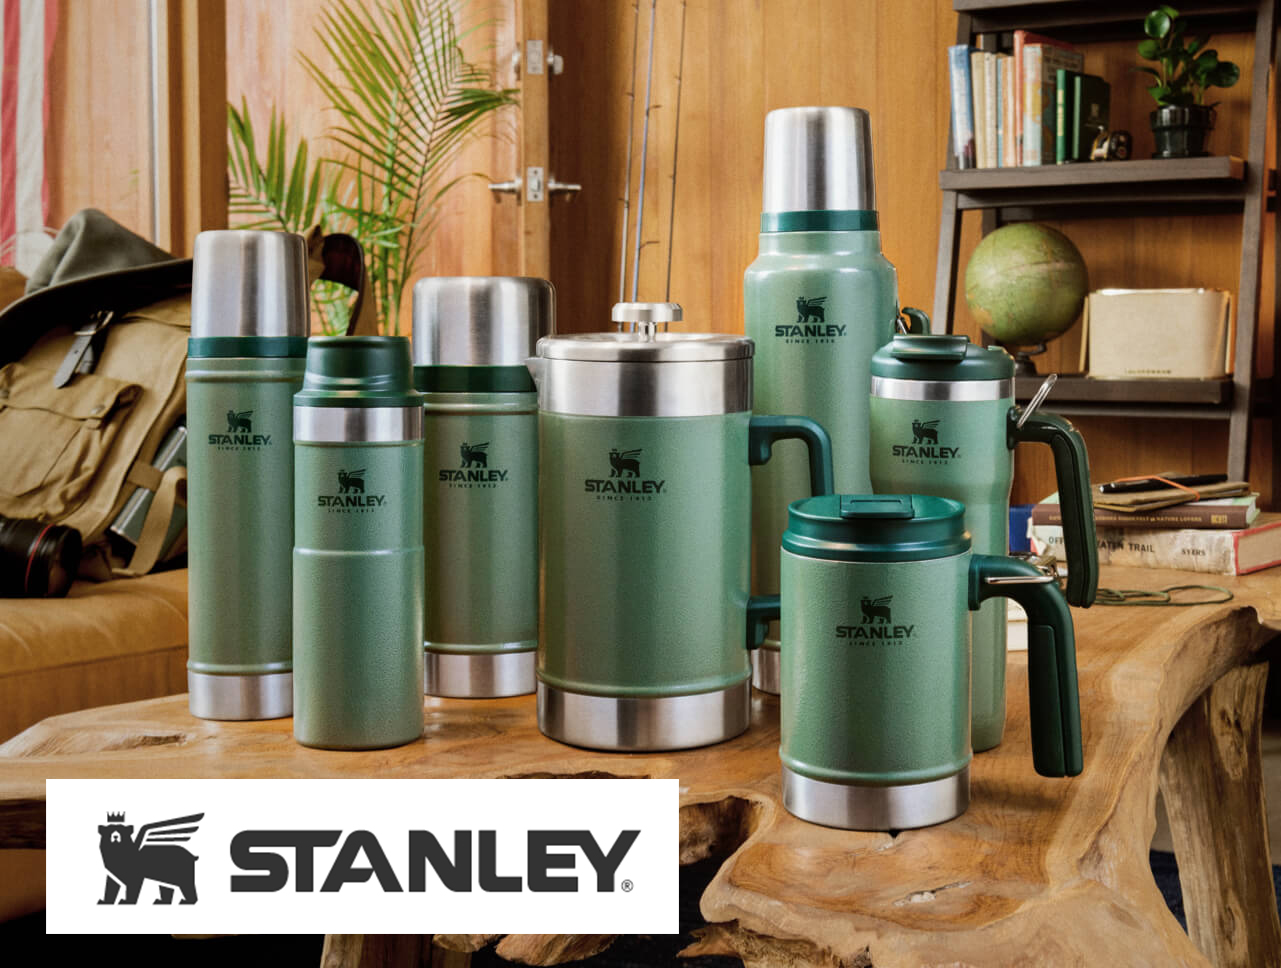 Coffee Pack - This Stanley Coffee Pack comes with 4 vacuum insulated coffee mugs with thermal lids that keep drinks hot for up to 7 hours and iced 30 hours. Also includes 1 vacuum French Press for all day-sipping. Lastly, a 2 qt thermos that is leak proof and fully packable, also BPA free is included.Retail: $200Donated by: Pacific Market International